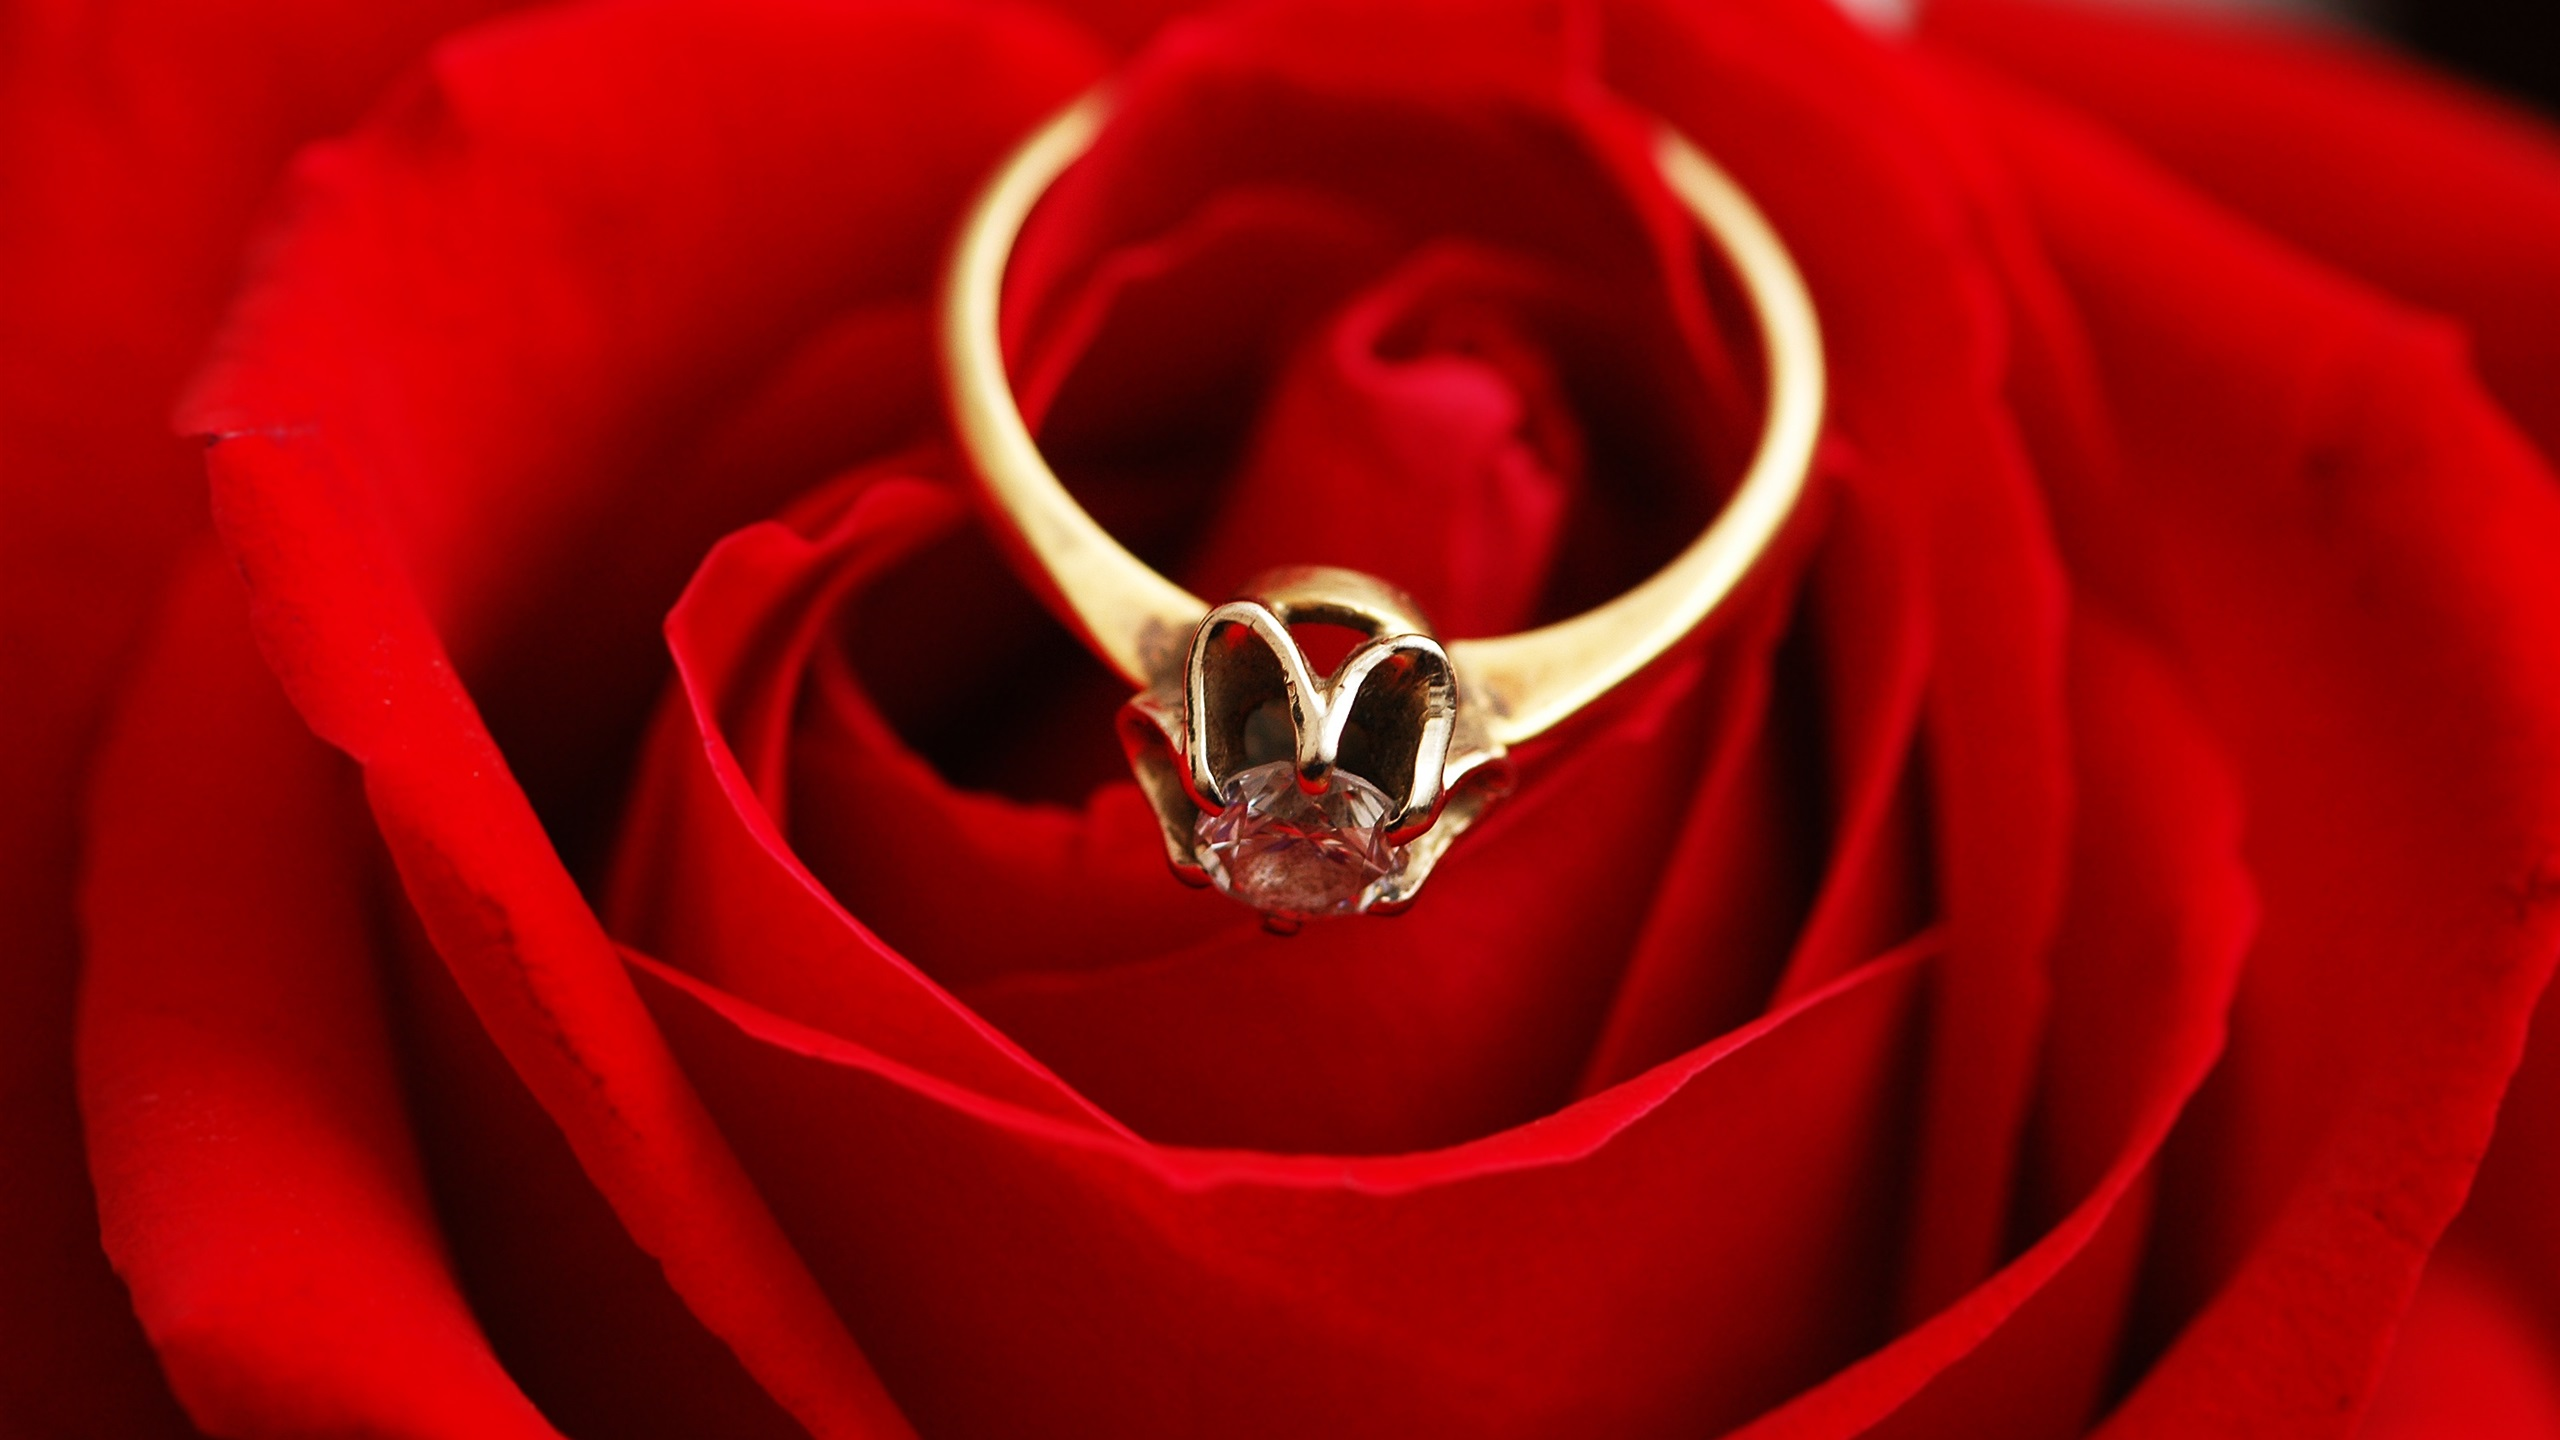 Gold Ring Diamond Red Rose 750x1334 Iphone 8 7 6 6s Wallpaper